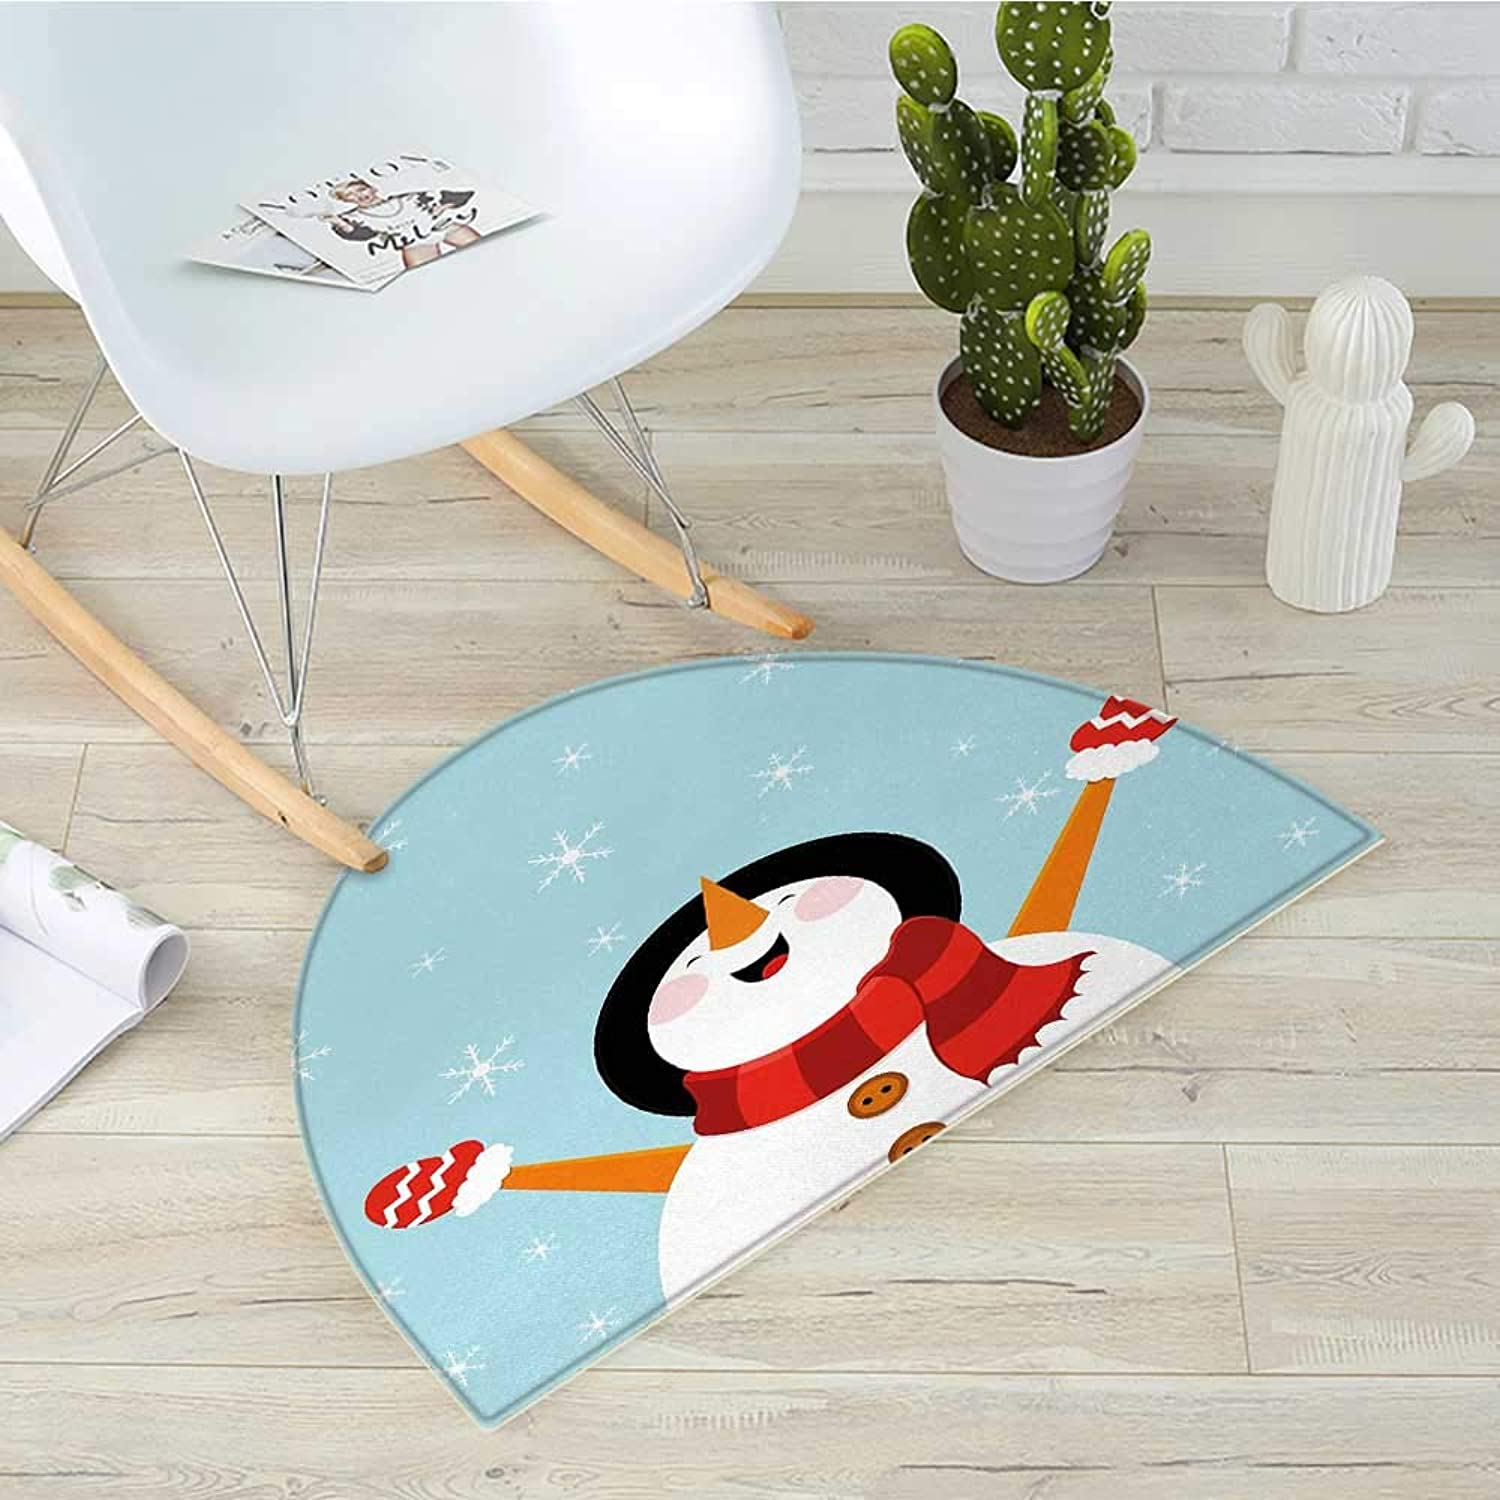 Christmas Semicircular CushionHappy Smiling Snowman with Ornate Snowflakes Cheering Joyful Graphic Character Entry Door Mat H 35.4  xD 53.1  Multicolor